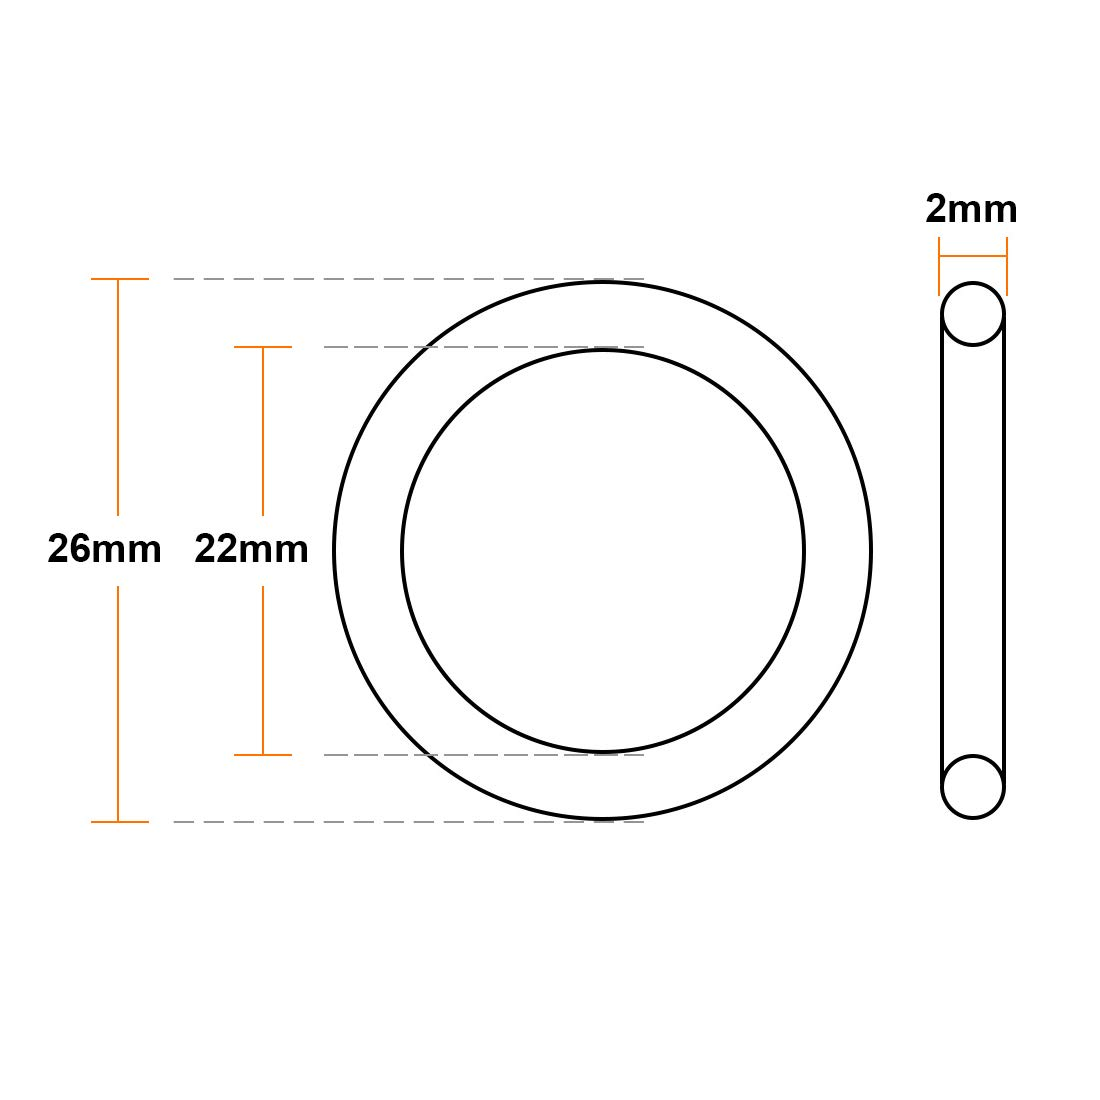 Pack of 20 Metric FKM Sealing Gasket uxcell Fluorine Rubber O-Rings 19mm OD 15mm ID 2mm Width